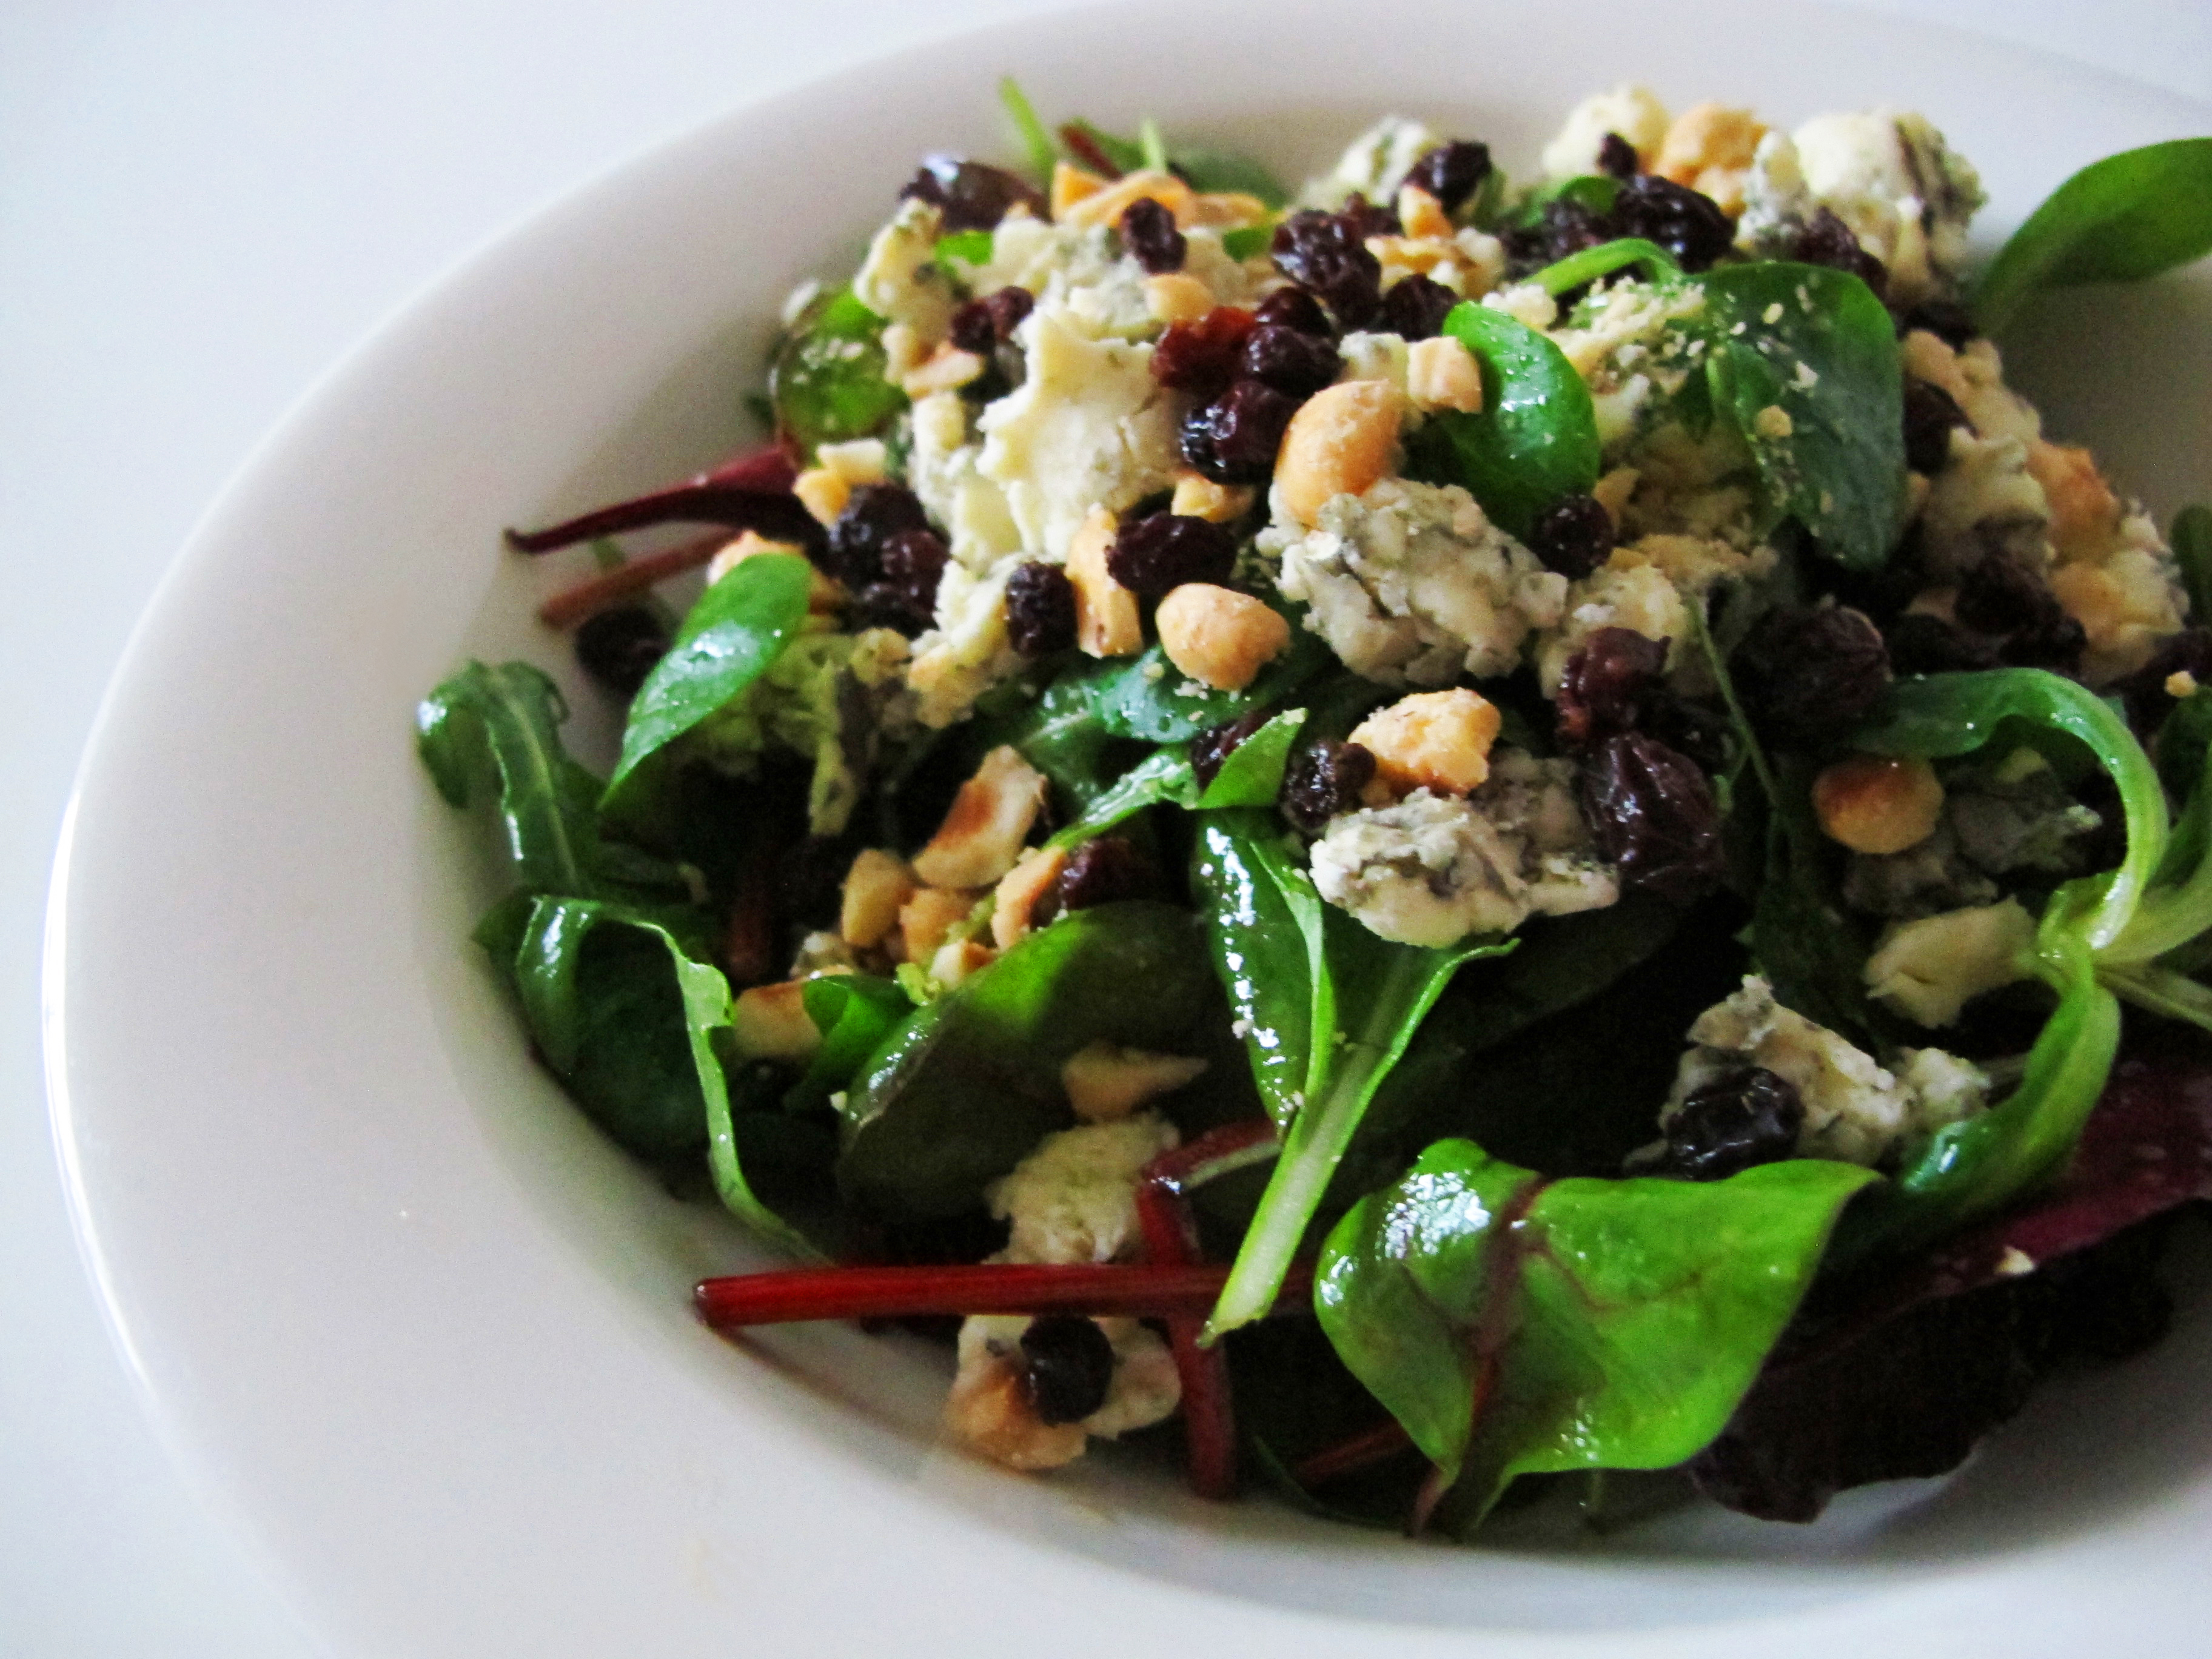 Mixed greens with blue cheese, currants, toasted hazelnuts, and honey ...